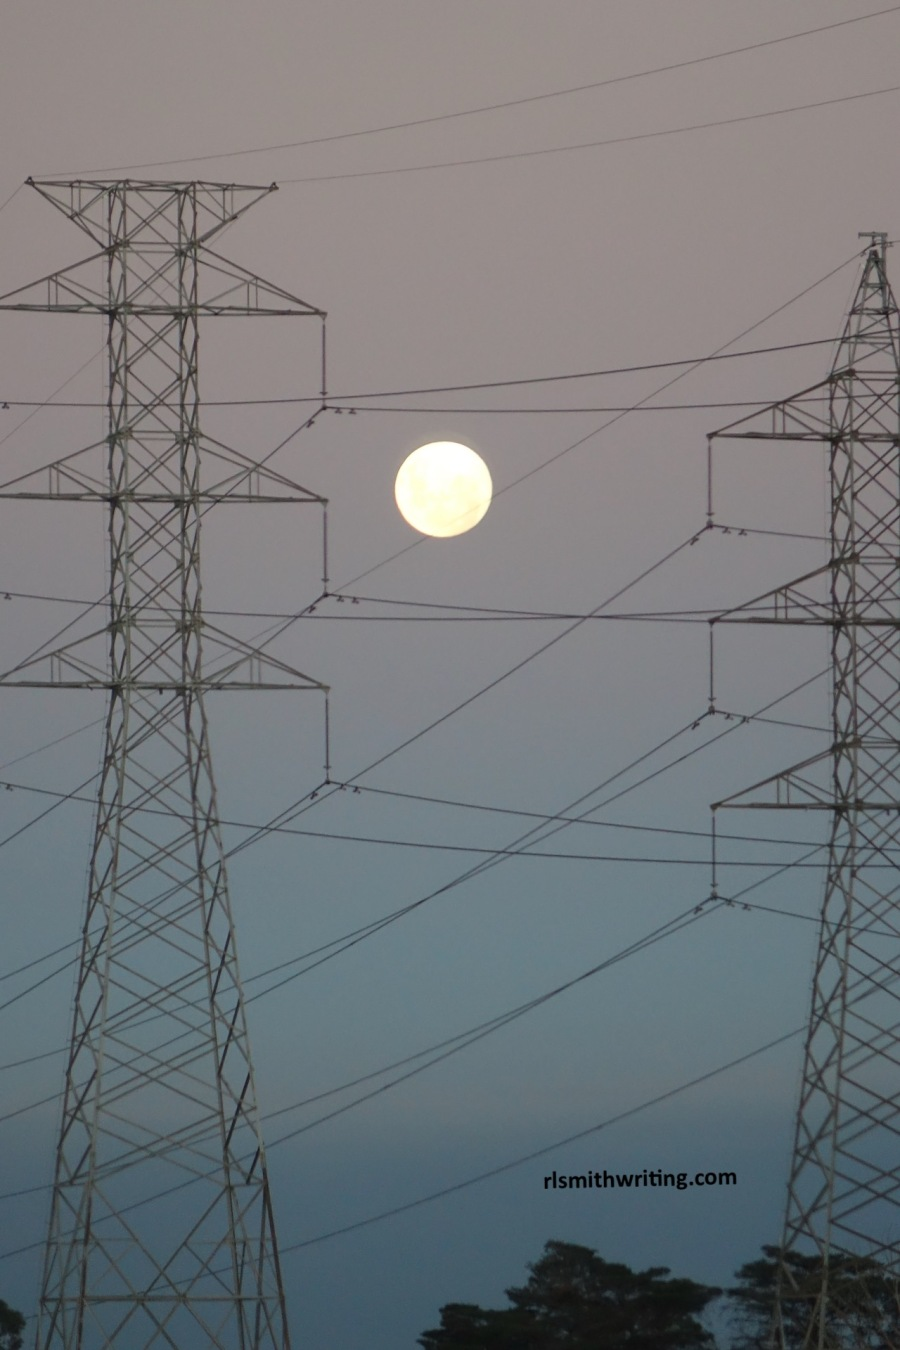 Full moon through electrical pylon wires